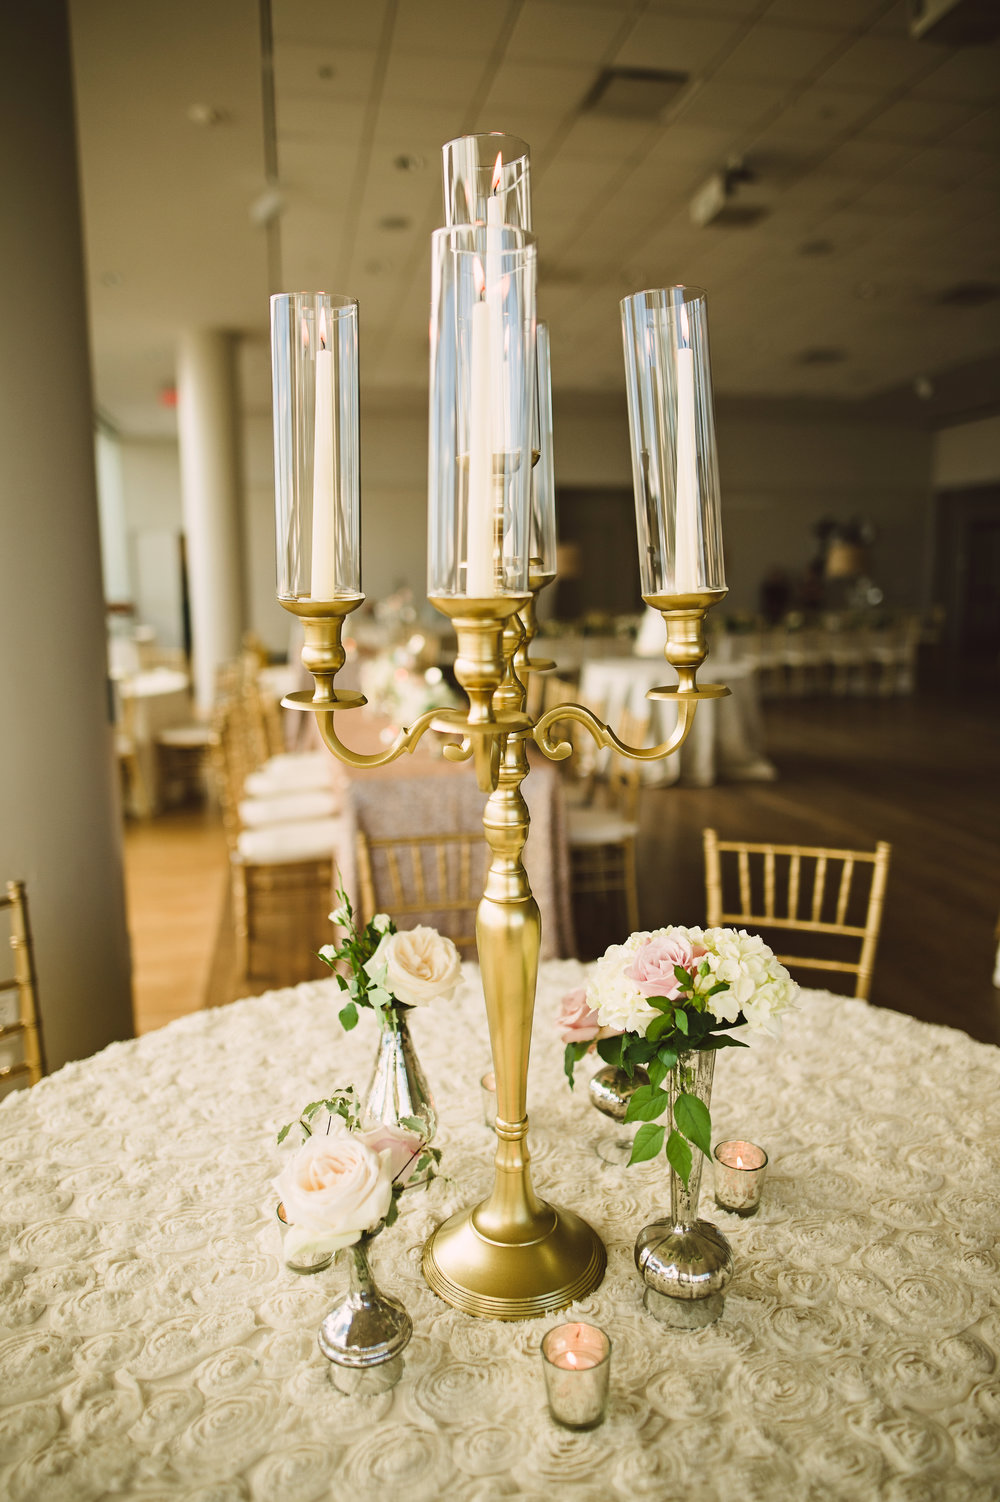 Candelabra centerpiece, Gold centerpieces, Wedding centerpieces, blush ivory and gold wedding, Candle wedding centerpieces, Tall wedding centerpieces, Blush sequin wedding linen, Wedding reception decor,  Wedding flowers, Candle centerpieces, Wedding centerpieces, Mint Museum Uptown wedding in Charlotte, North Carolina by The Graceful Host, Blush ivory and greenery wedding flowers